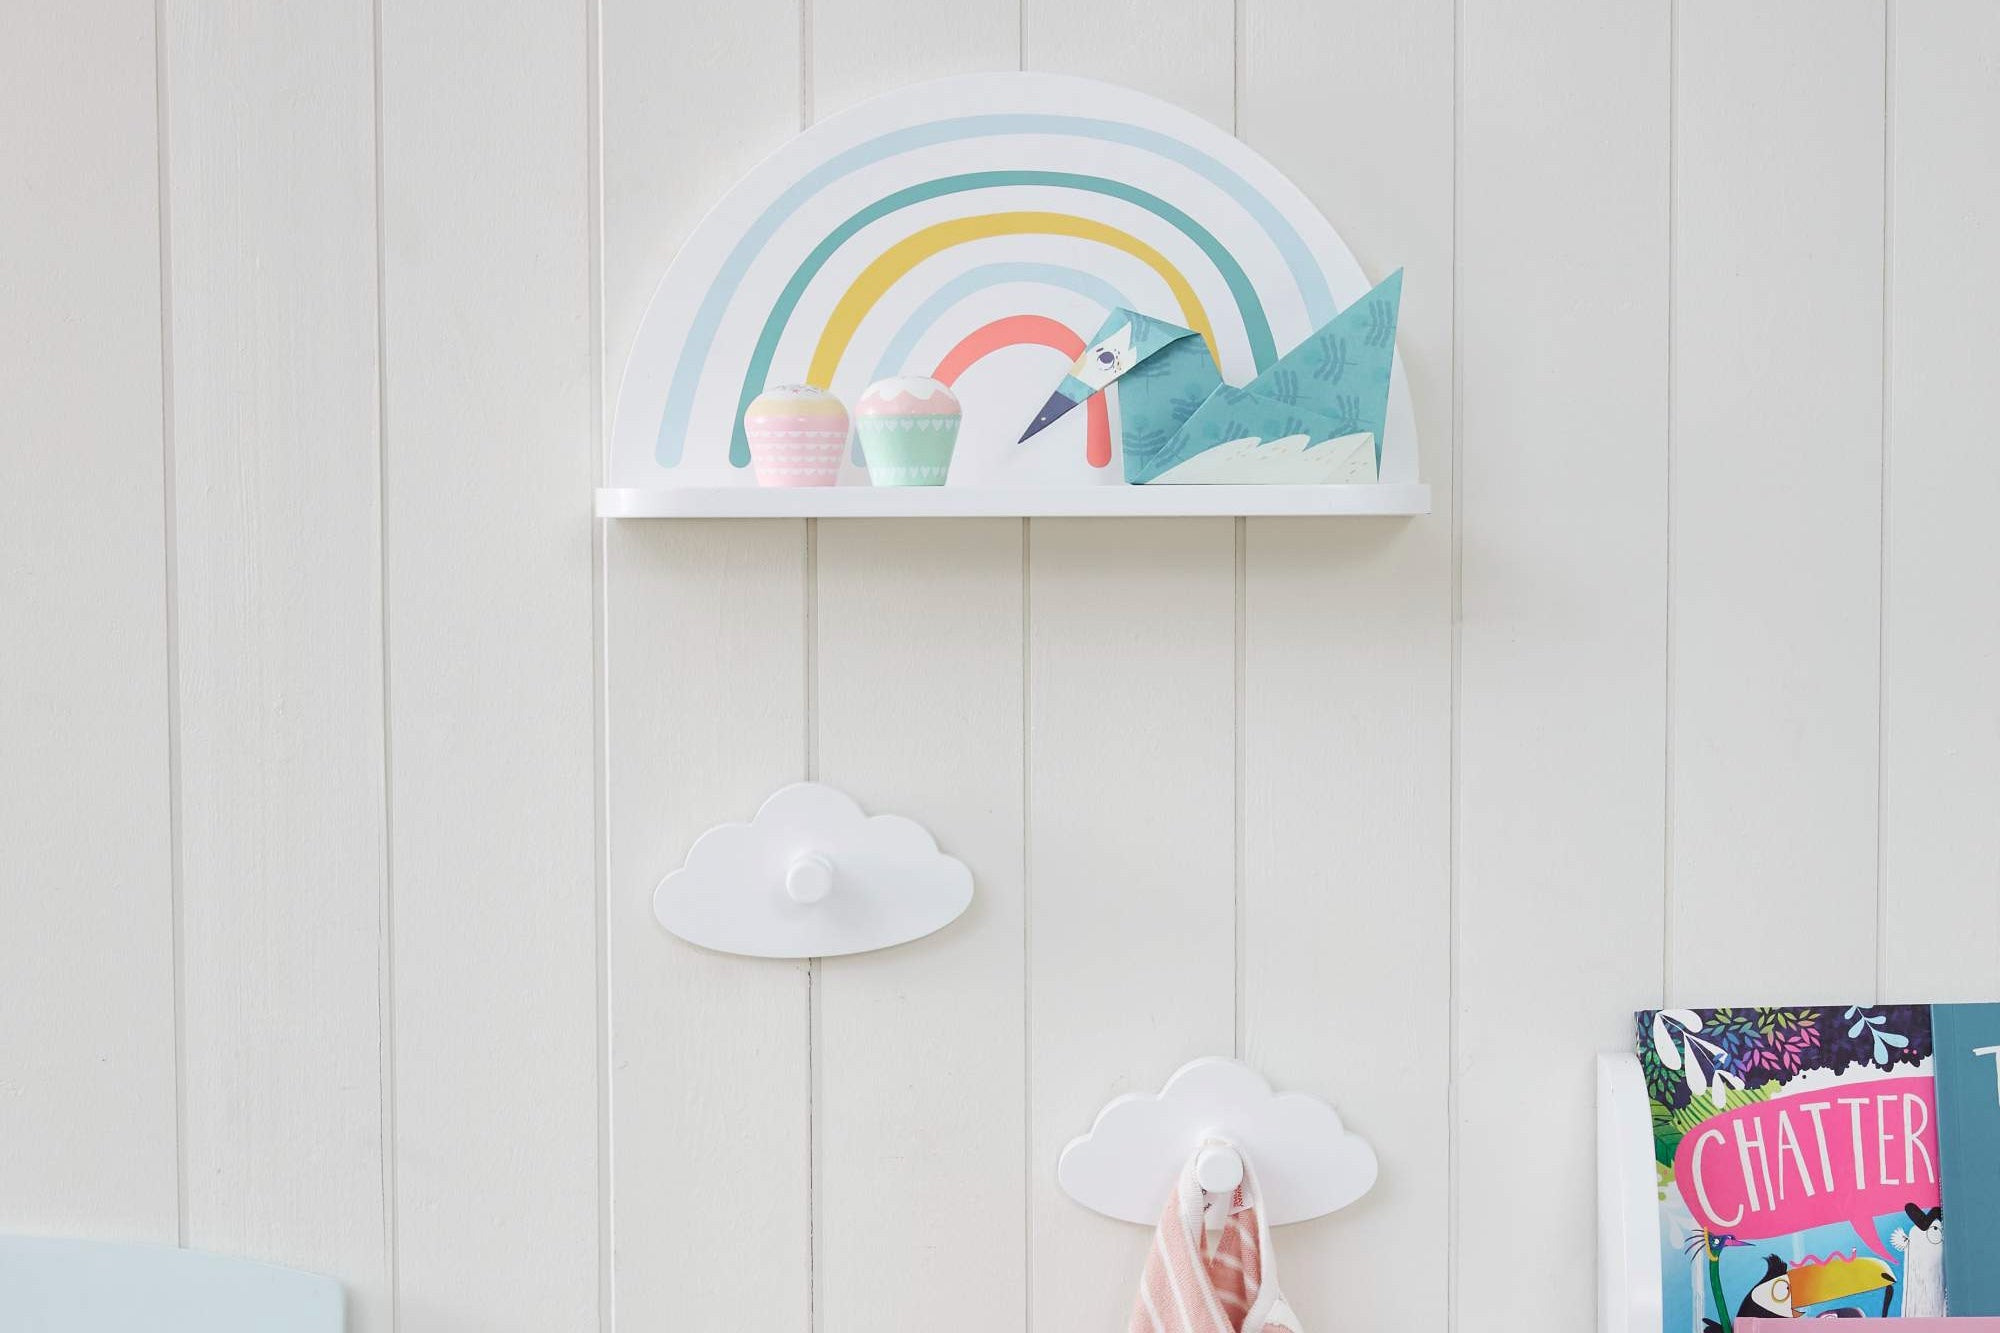 Celebrate World Book Day with a rainbow-themed book nook